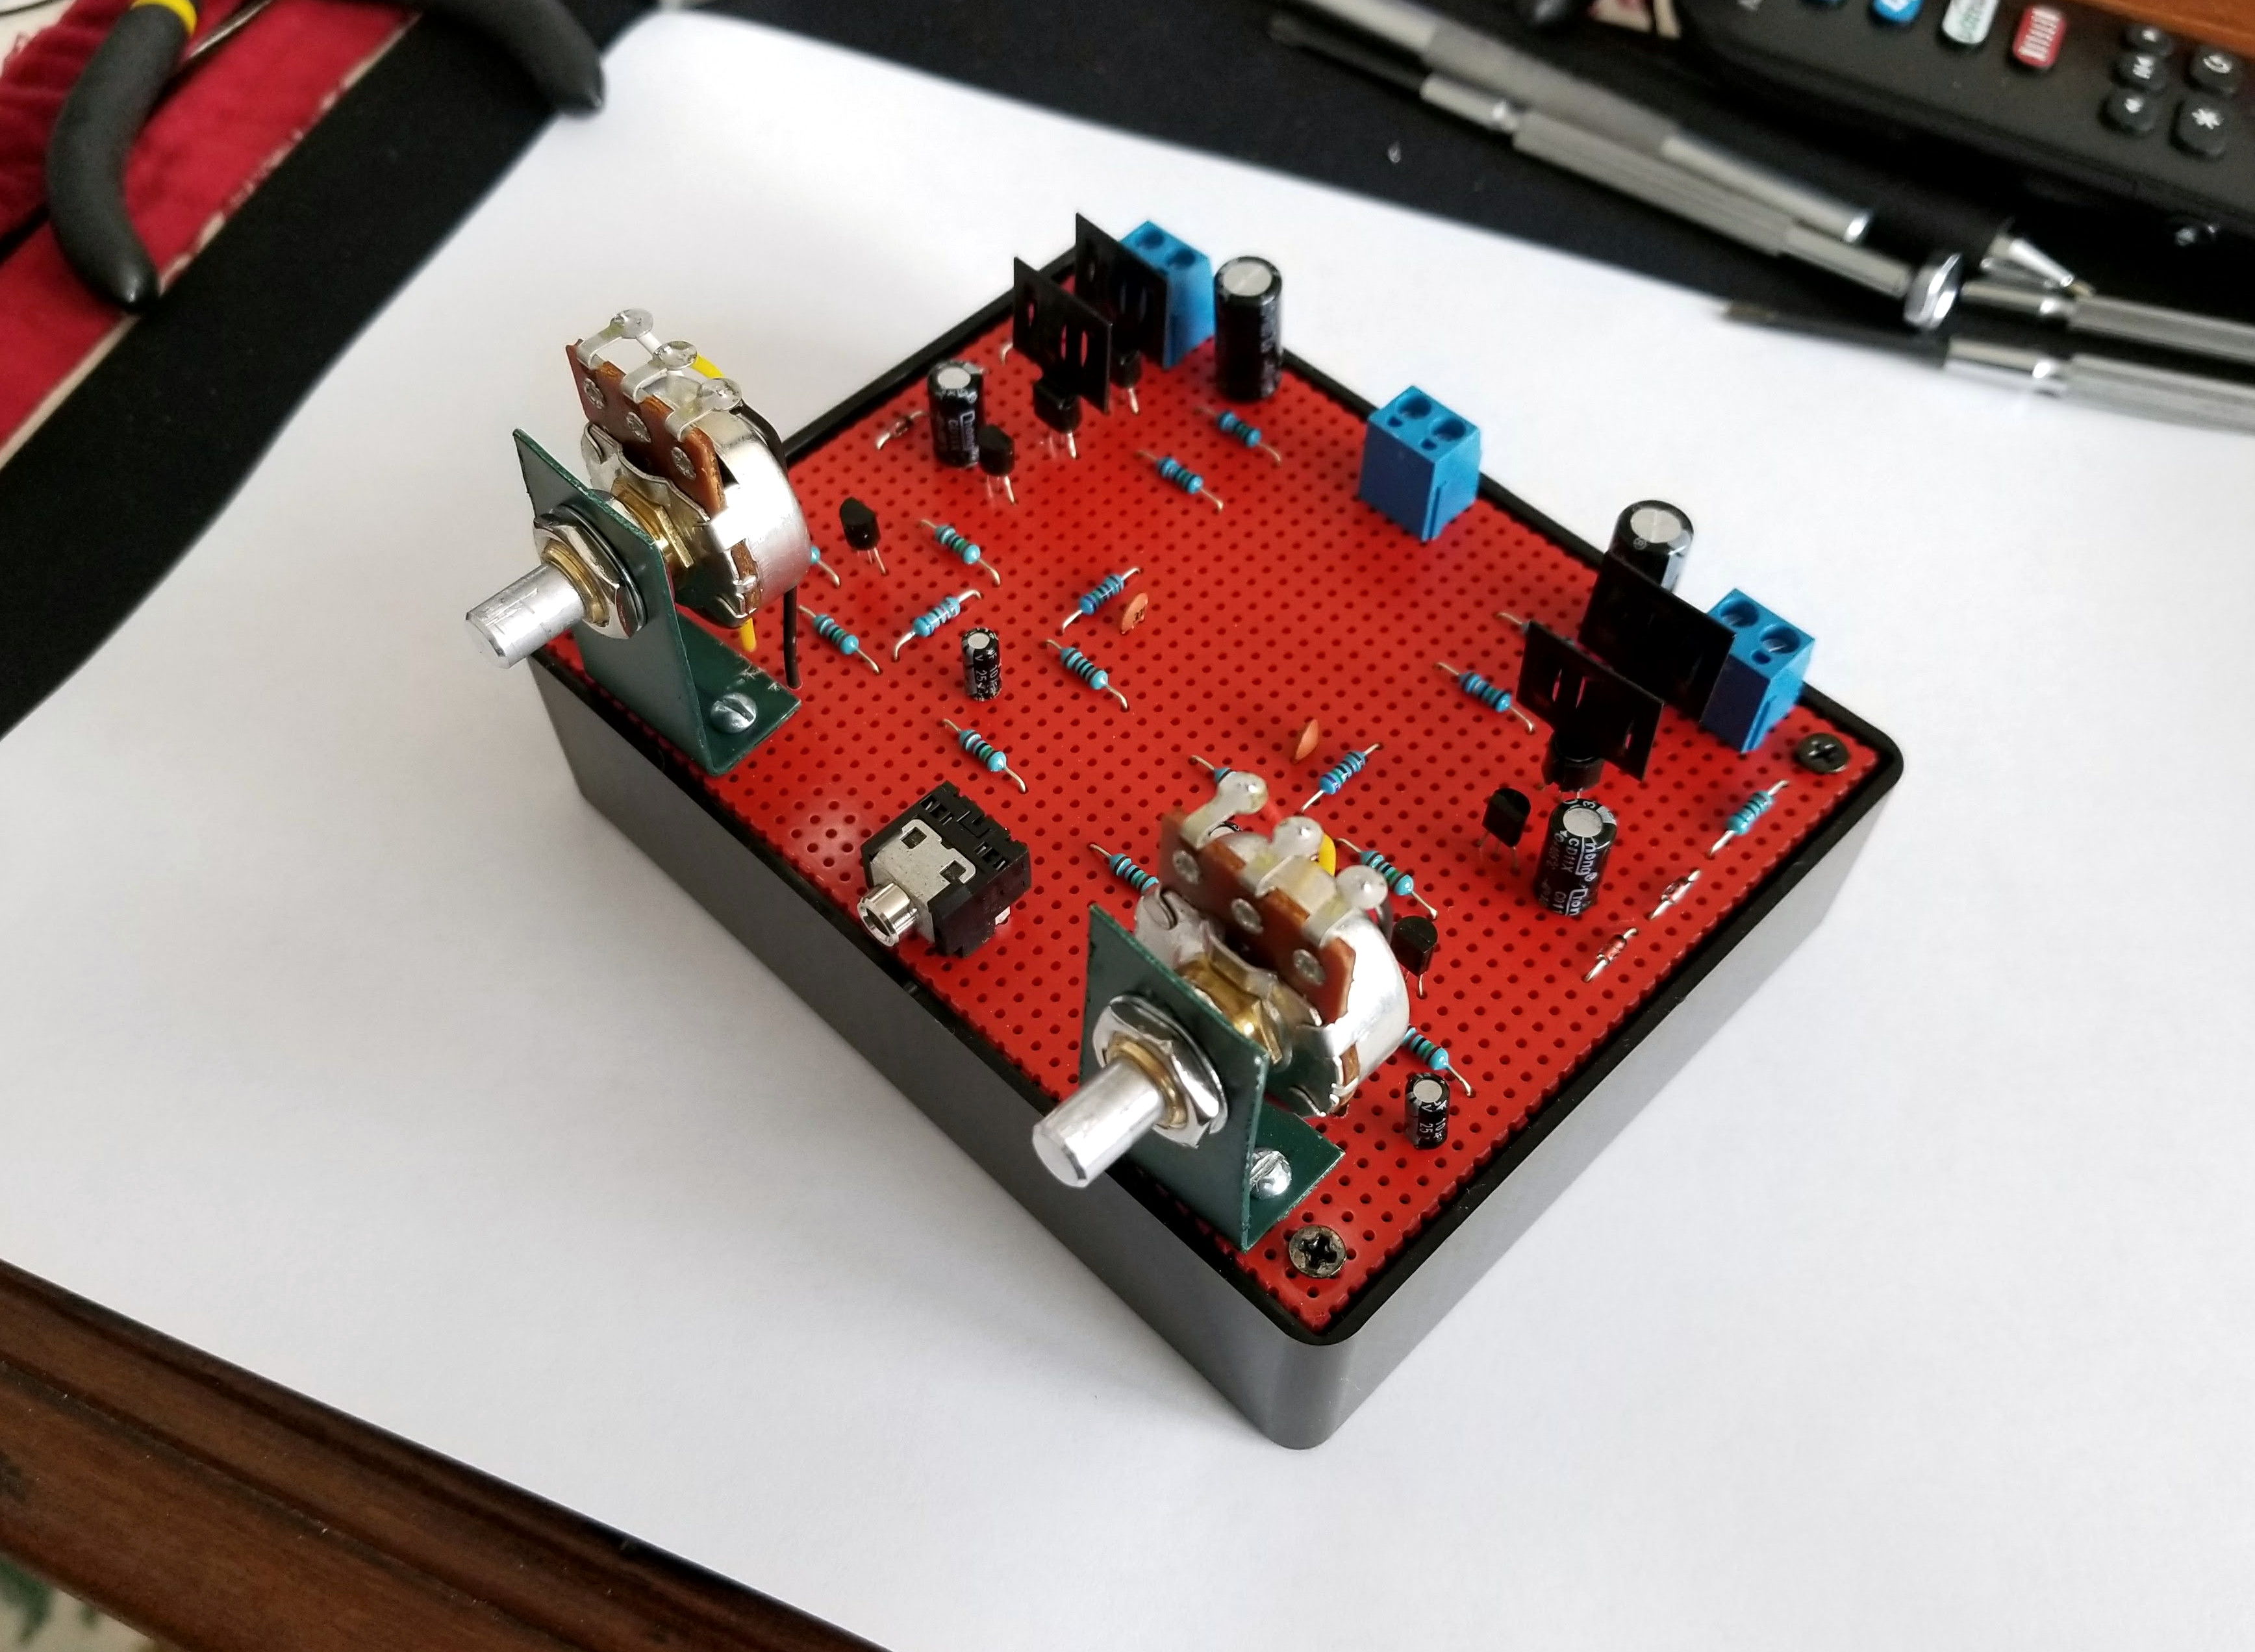 Build This 8 Transistor Stereo Amplifier Audio Power Amp Circuit Simple Schematic Collection The Assembly Manual Covers Setup And Operation Of Along With Some Modifications You Can Make To Double Output If Desired